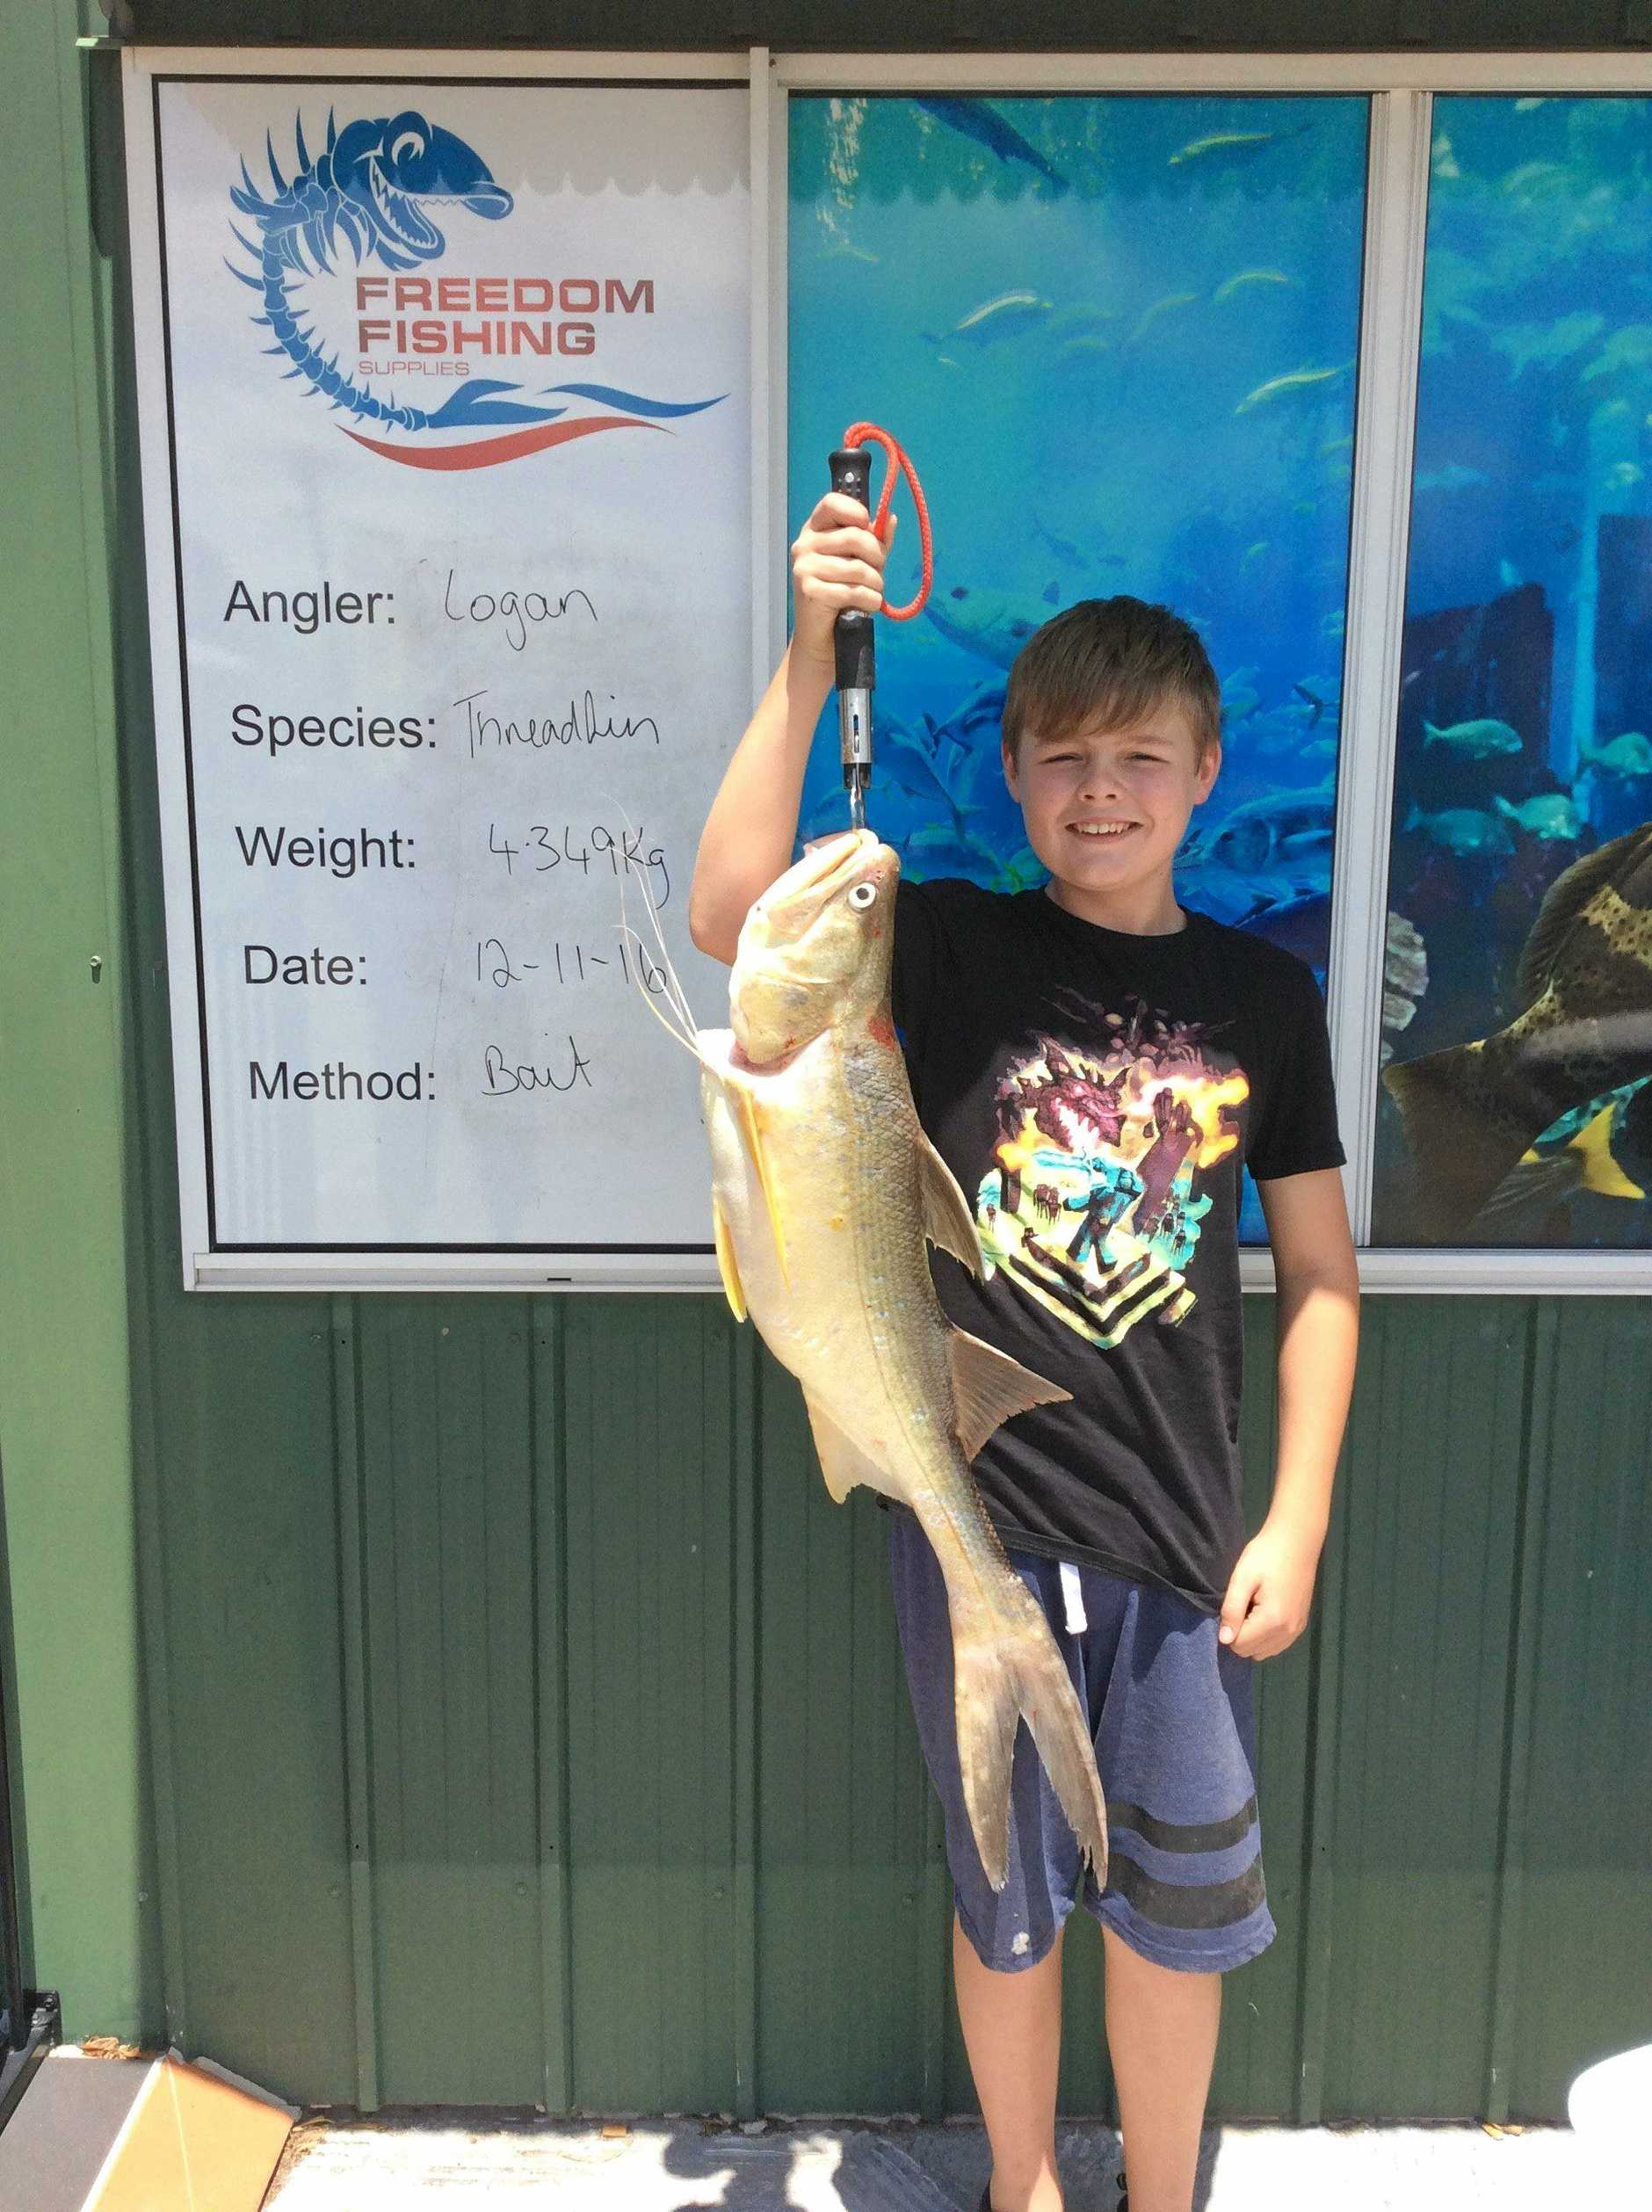 Young Logan was chuffed to land his first threadfin. It weighed in at 4.34kg and he out-fished his Dad.